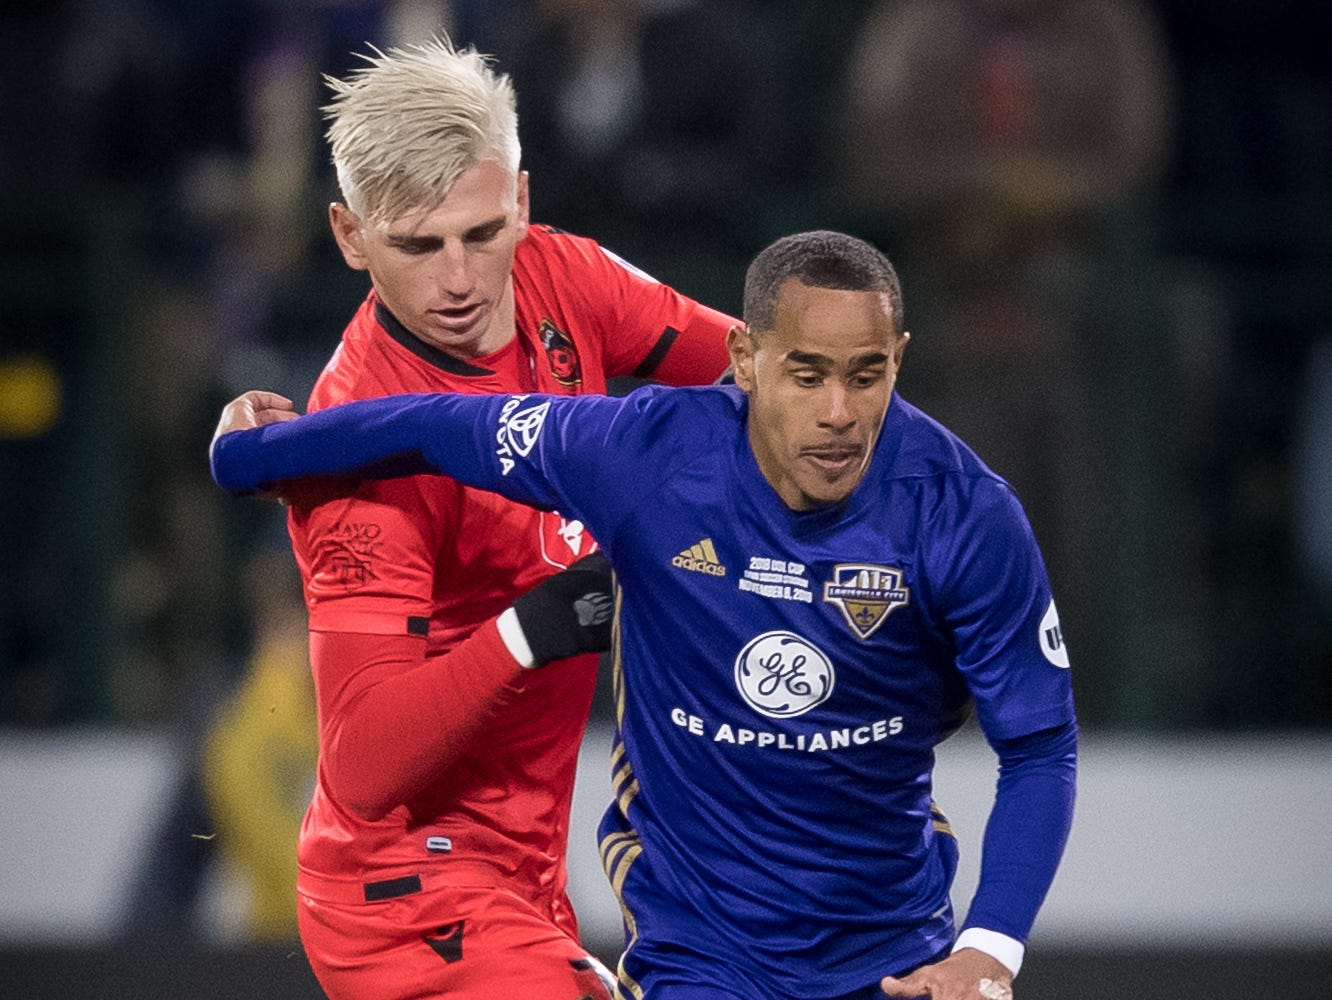 Louisville City FC midfielder George Davis IV (22) plays against Phoenix Rising FC defender Tristian Blackman (77) during the USL Cup final played at Lynn Stadium on the campus of the University of Louisville, Louisville, Ky., Thursday, Nov., 8, 2018.